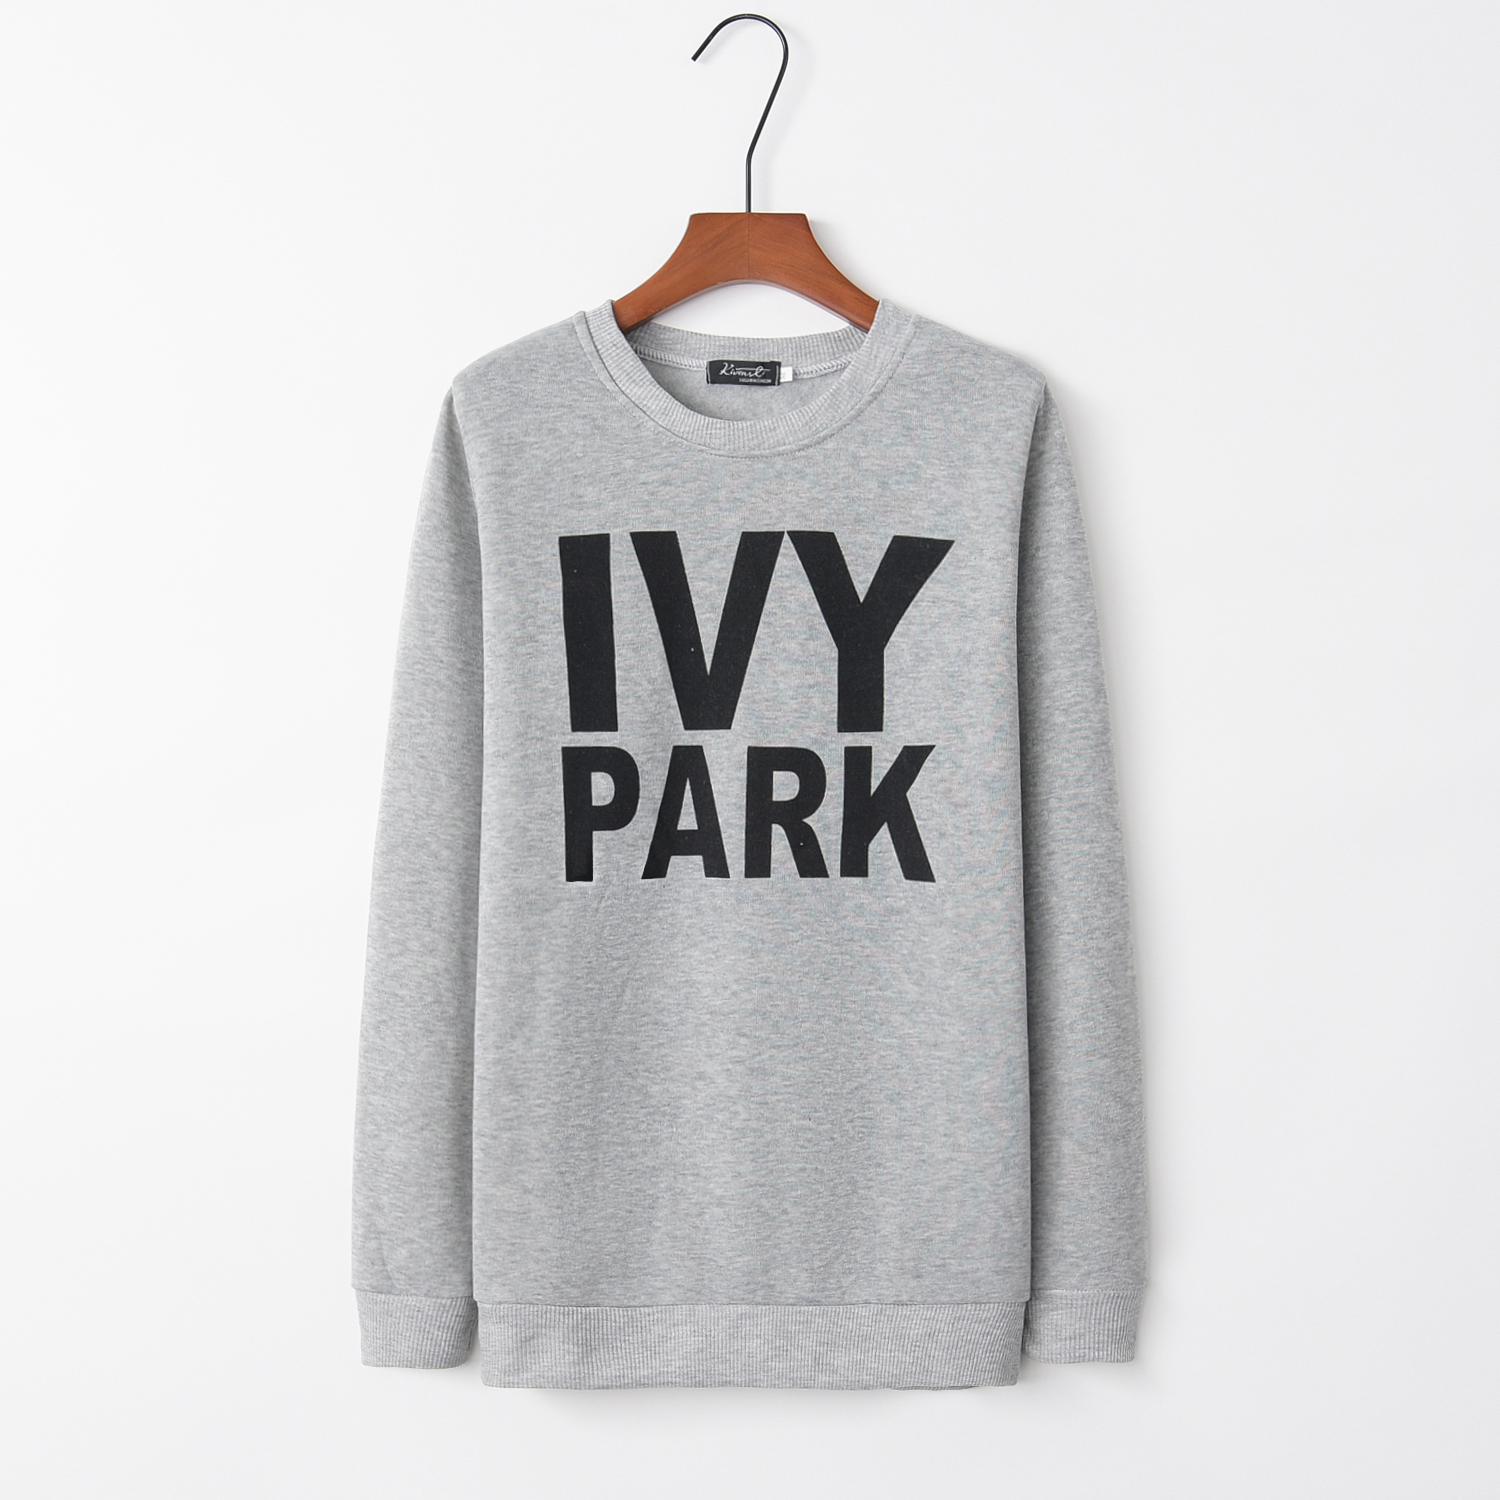 2016New Arrvials Ivy Park Hoodies Letter Printed 3colors  Fashion Style Pullover Sweatshirt For Women Mujer Lager